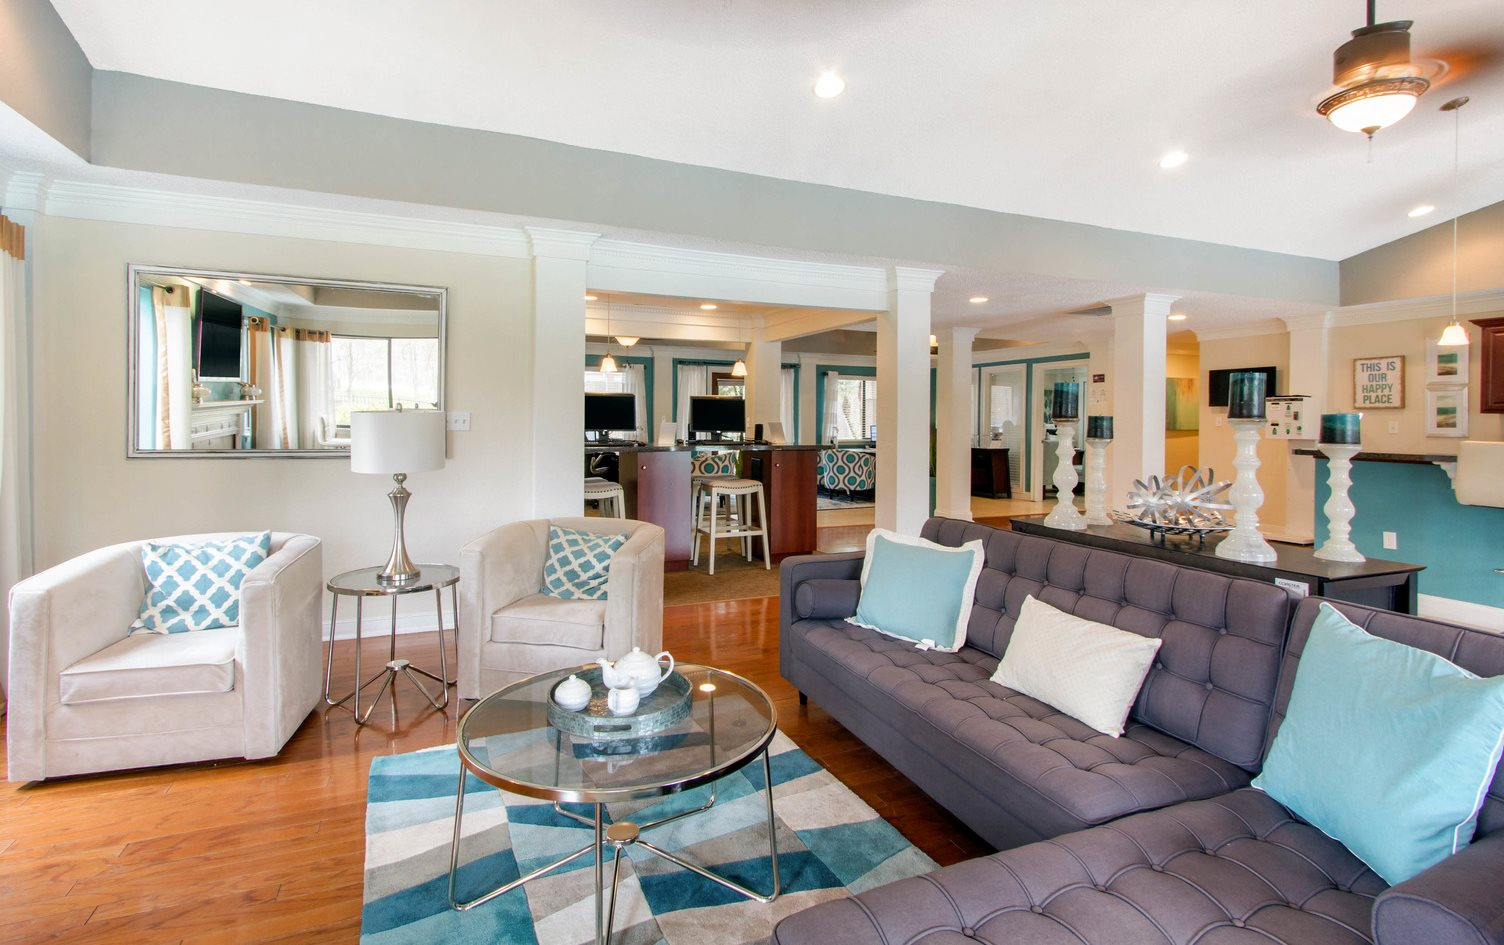 Clubhouse with two couches, two chairs, coffee table and decor